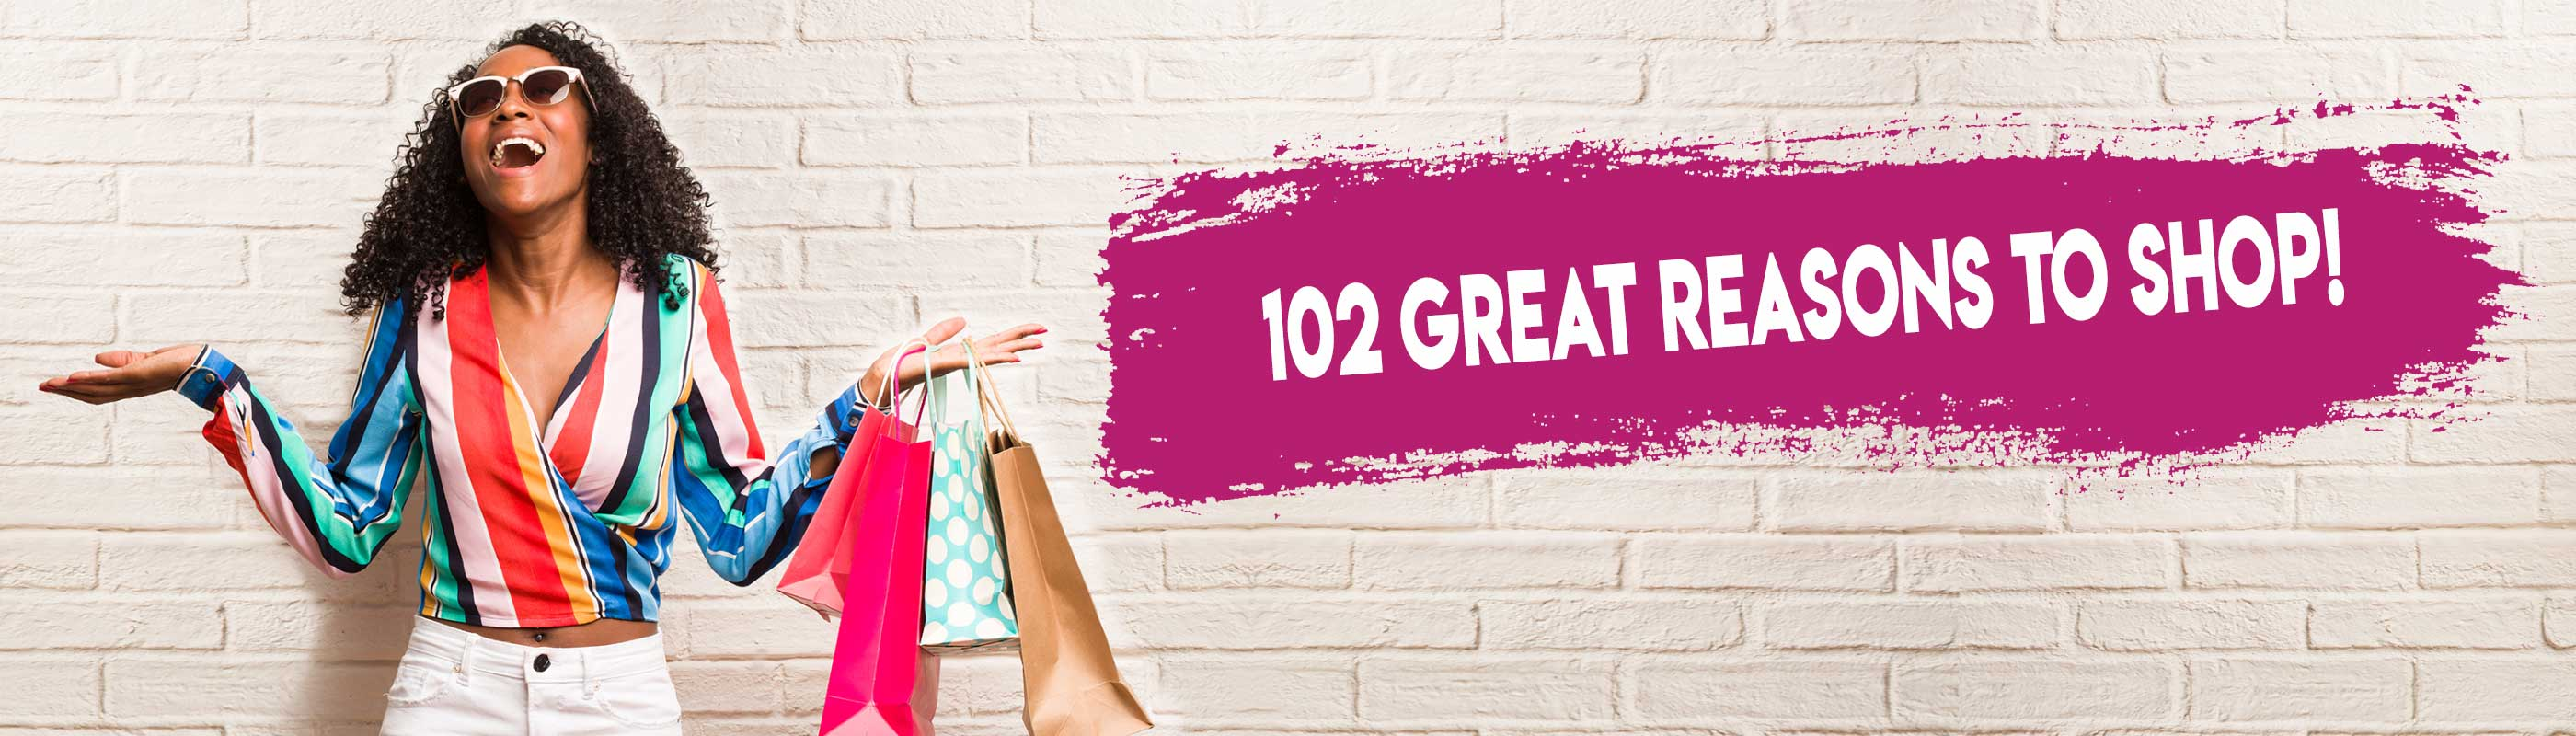 Bloem Plaza Shopping Mall 102 great reasons to shop!